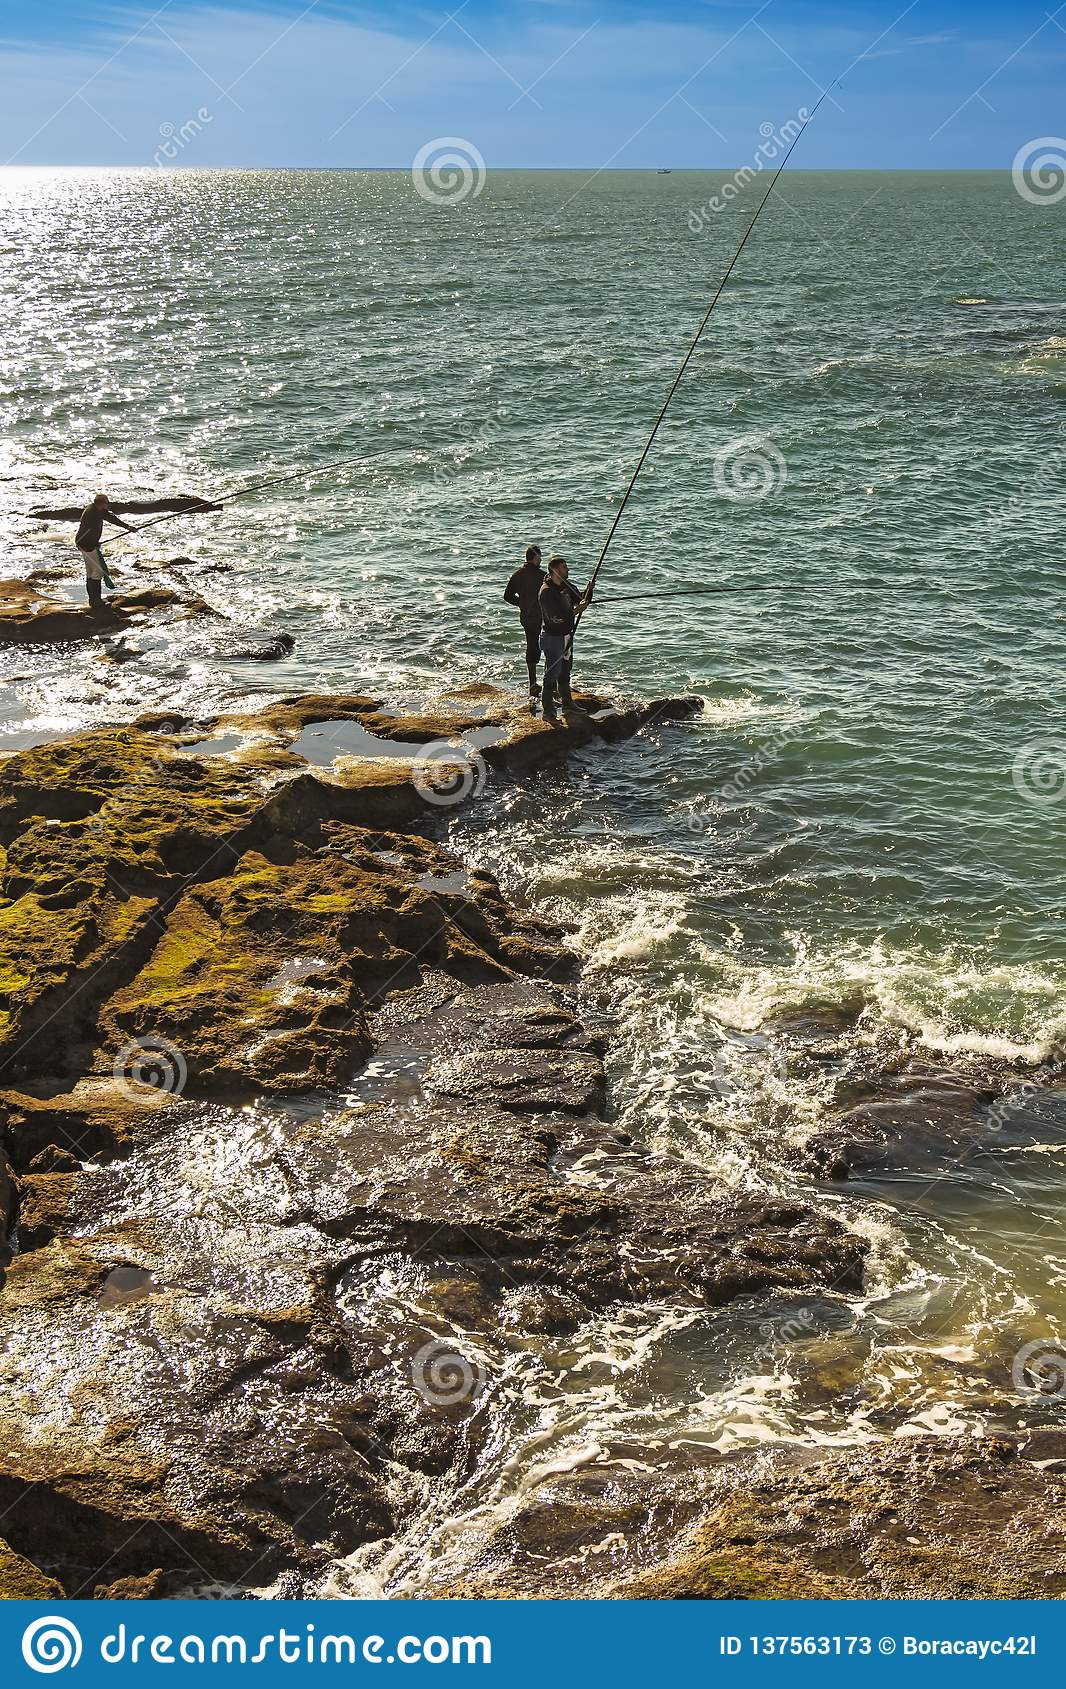 Men fishing off the rocks of Paseo Fernando Quinones in Cadiz